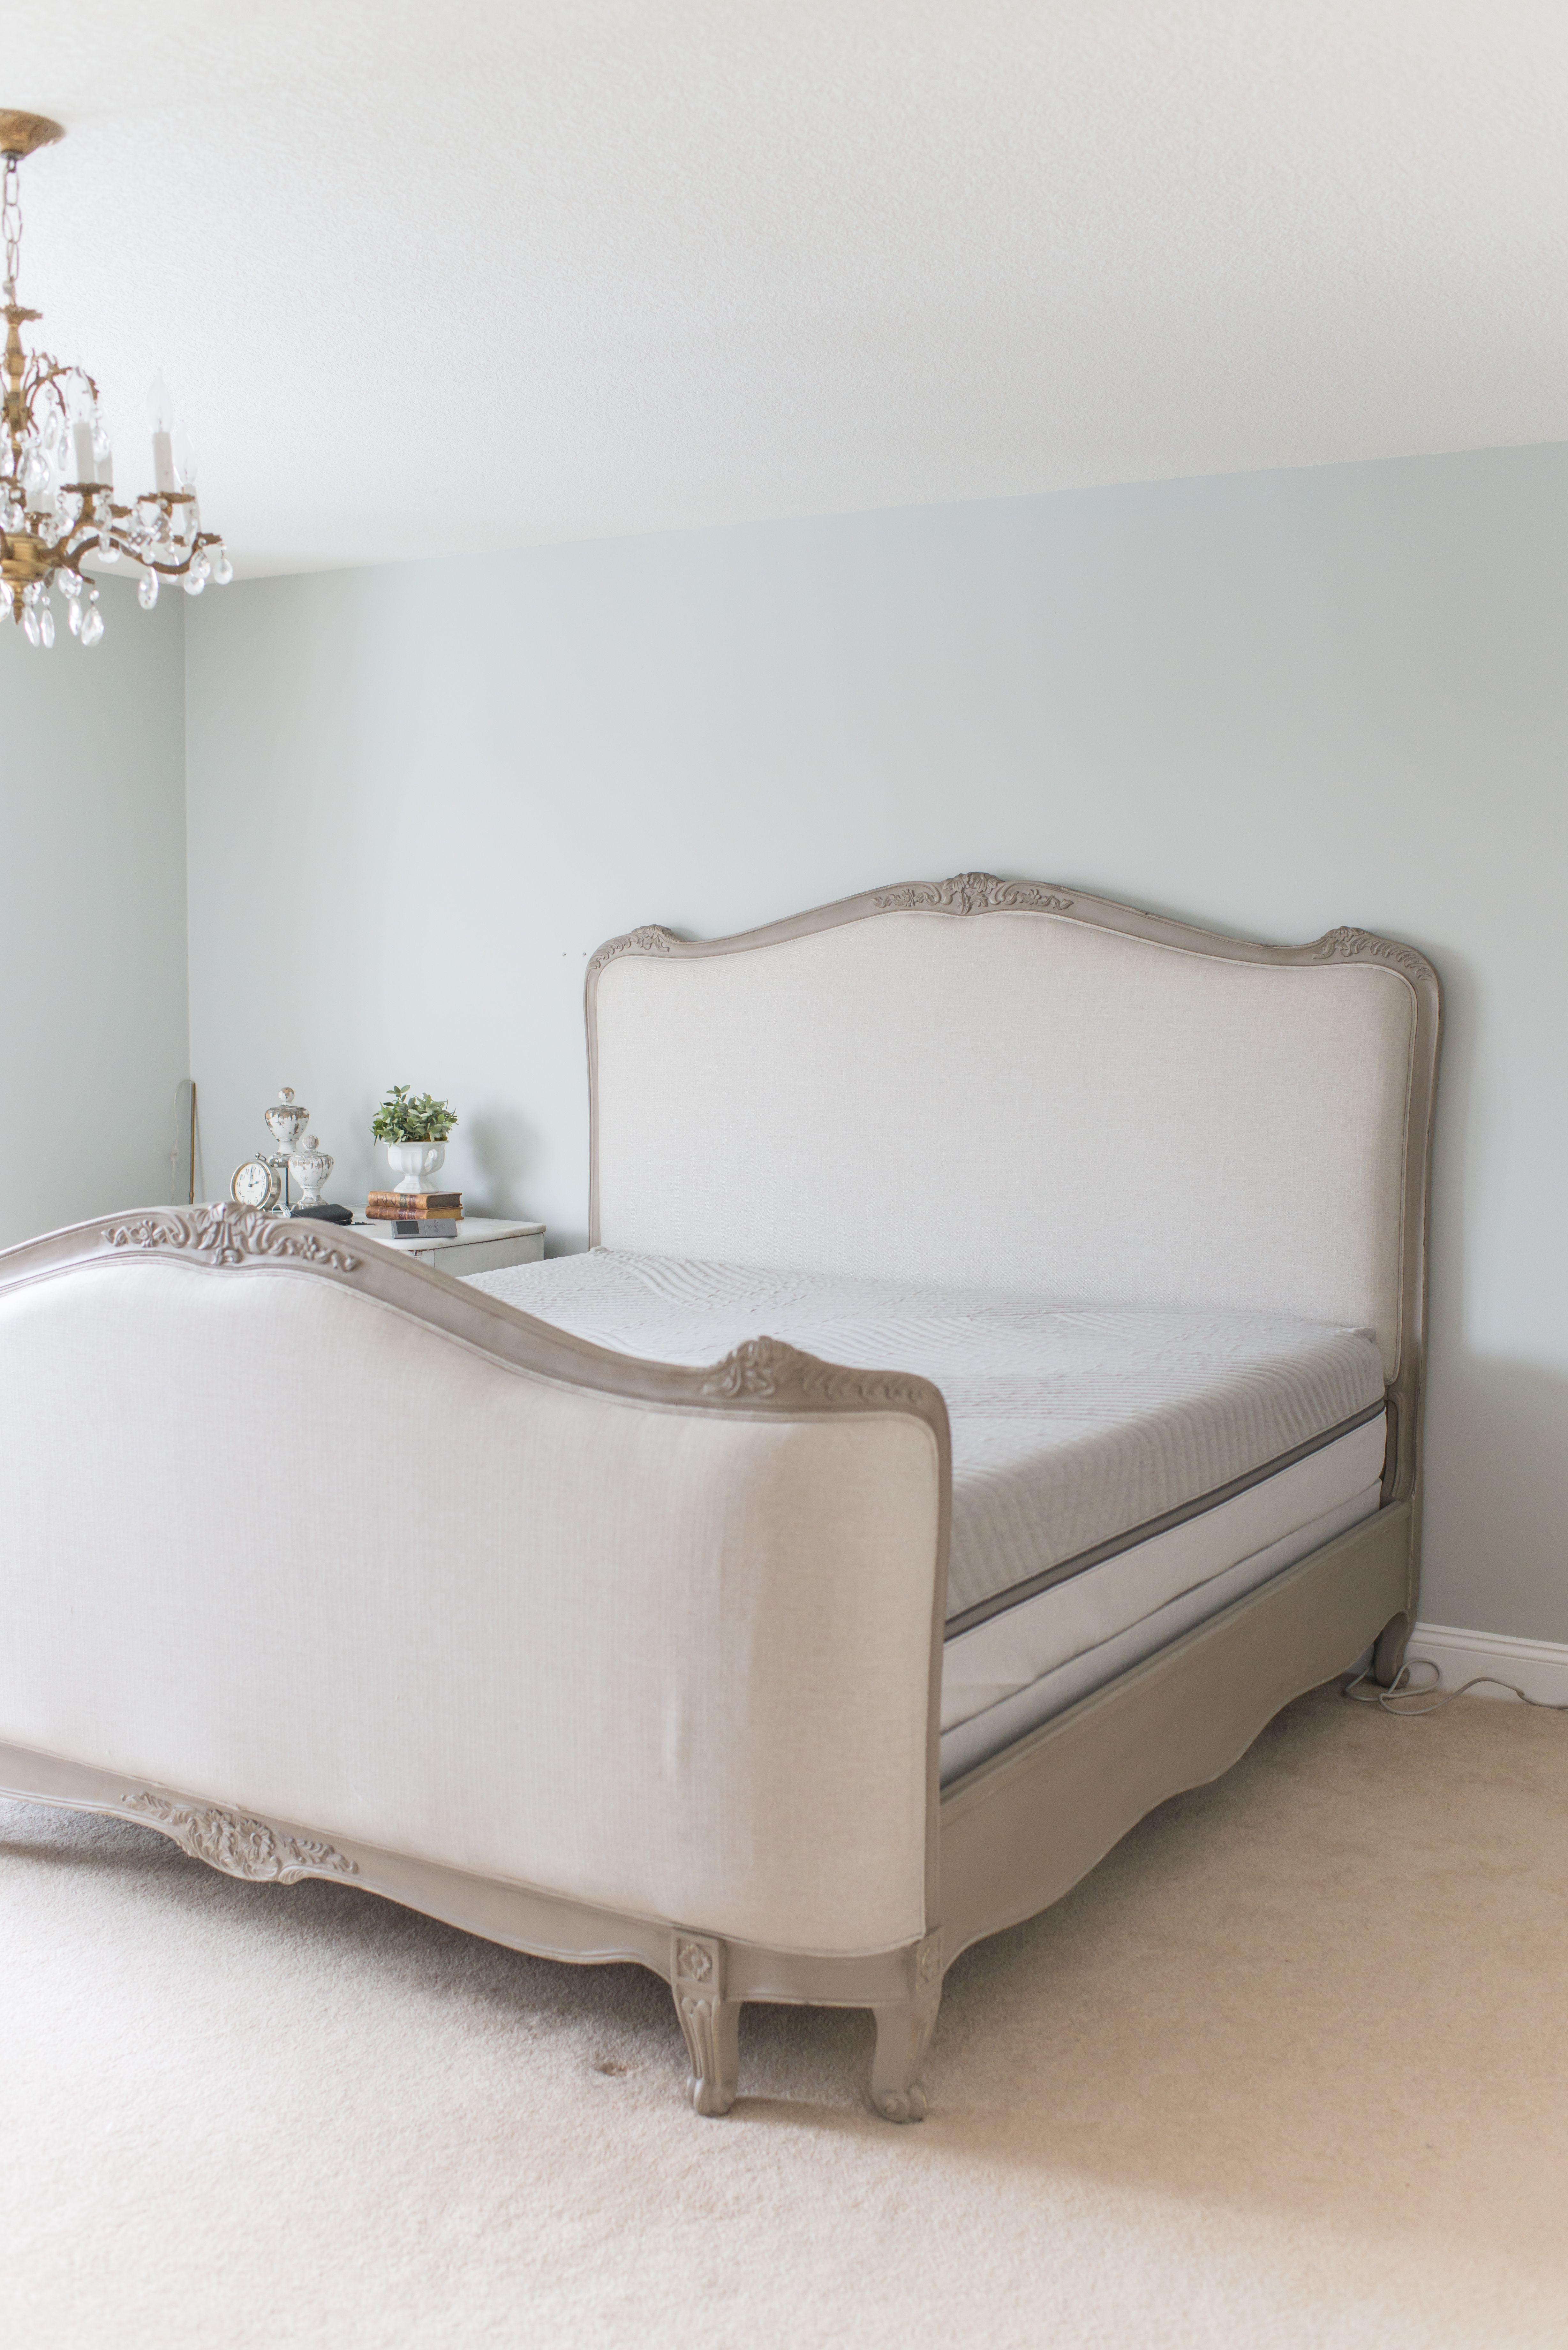 nonsponsored followup Sleep Number bed review Sleep